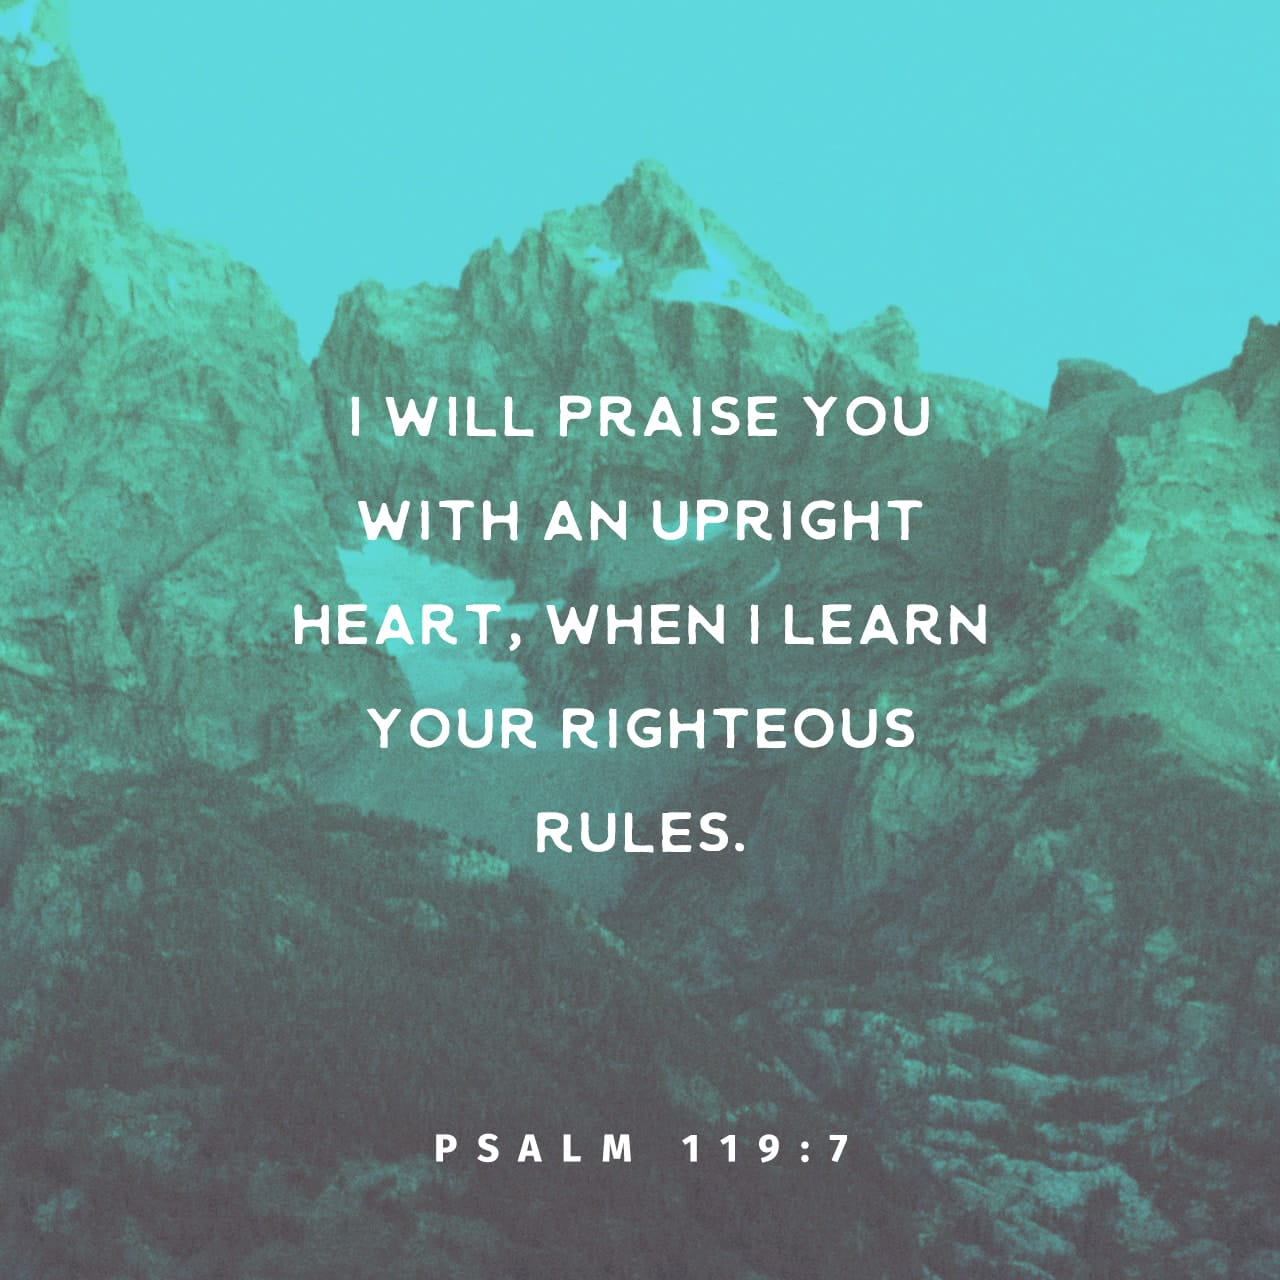 Psalms 119:7 I will praise thee with uprightness of heart, when I shall have learned thy righteous judgments. | King James Version (KJV)